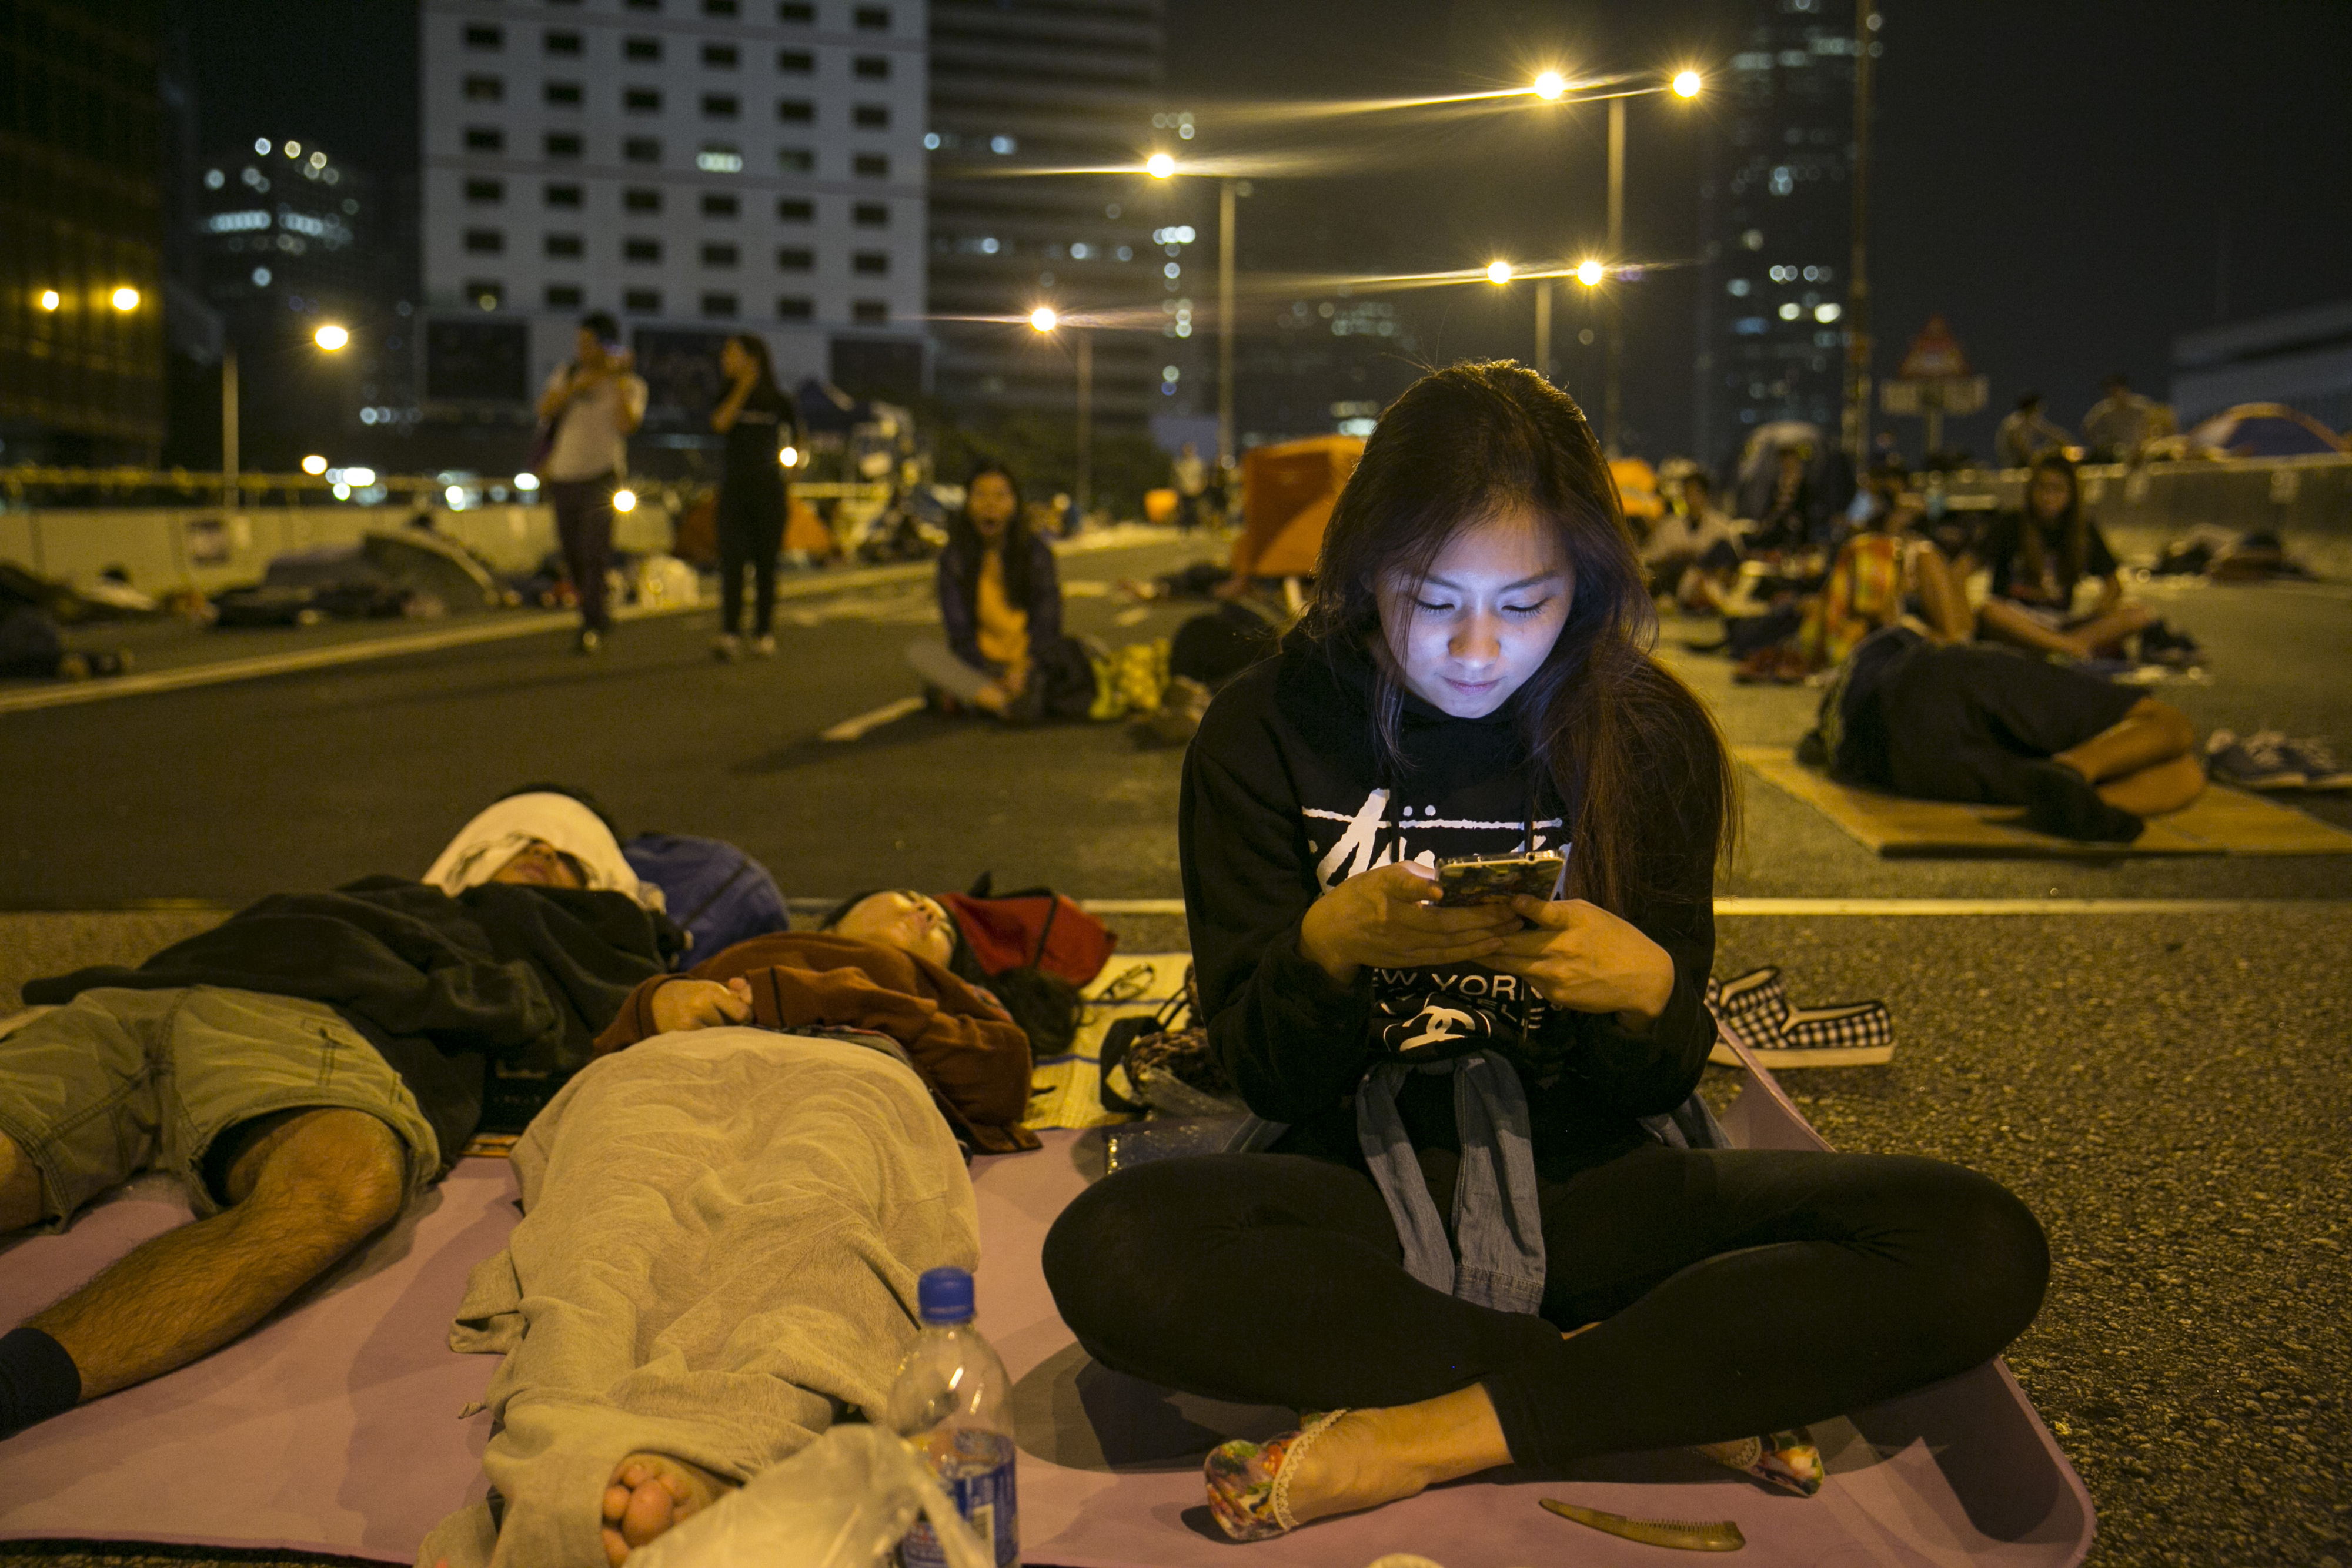 Why a messaging app meant for festivals became massively popular during Hong Kong protests